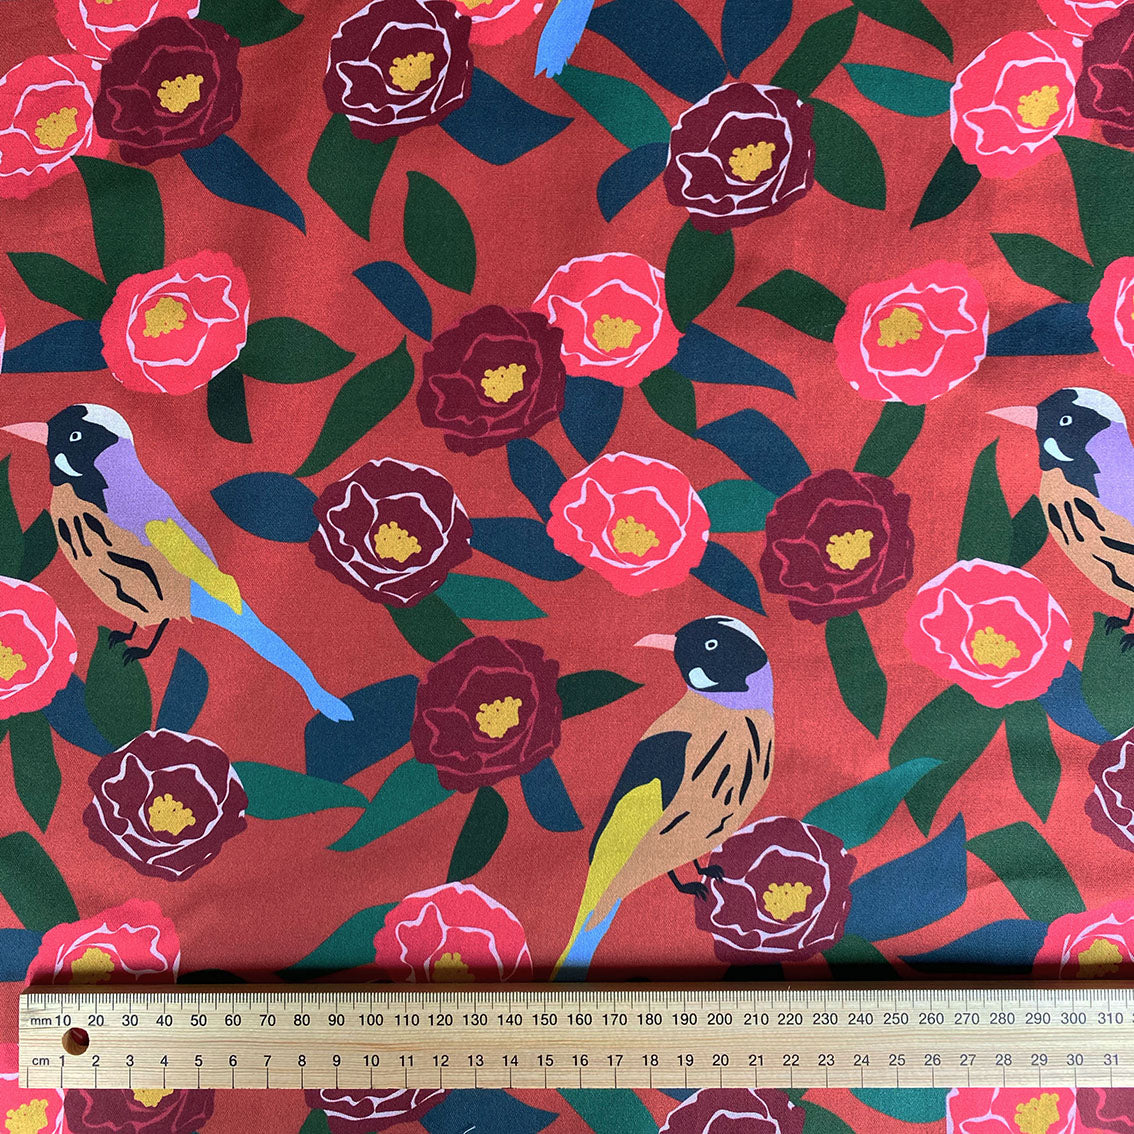 Camellia Tree - Cotton Twill fabric by the half metre